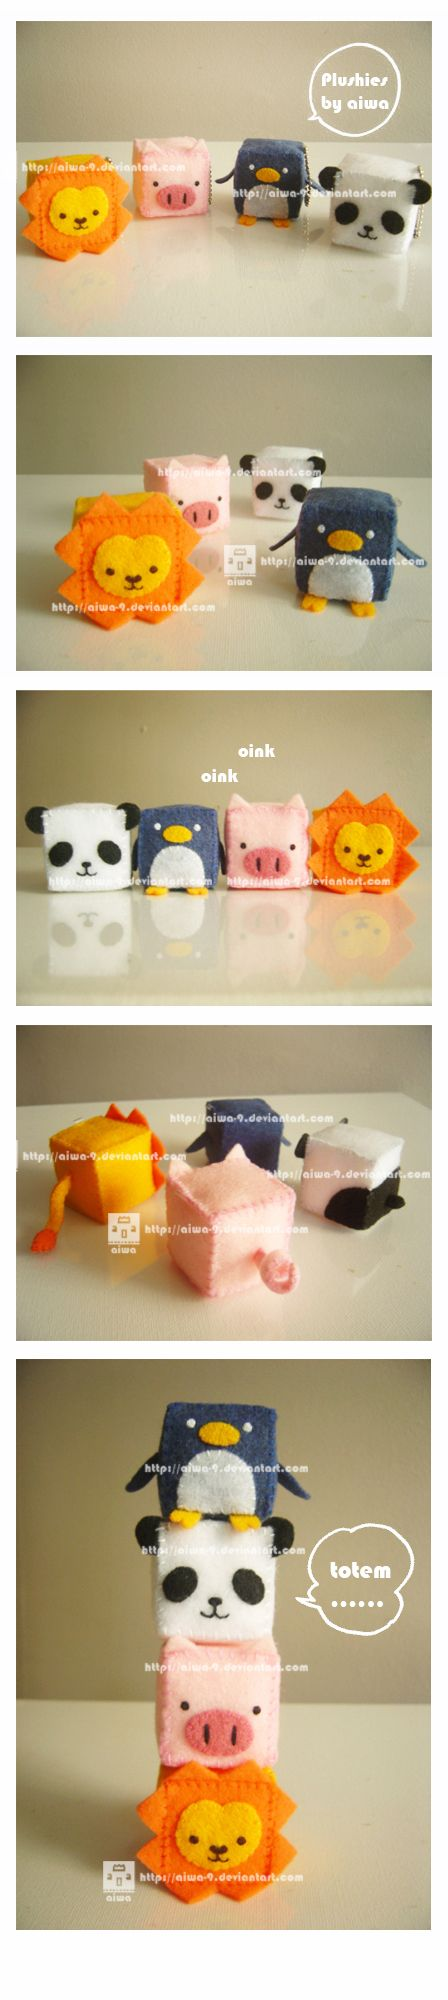 CUBED series 1 by ~aiwa-9 on deviantART